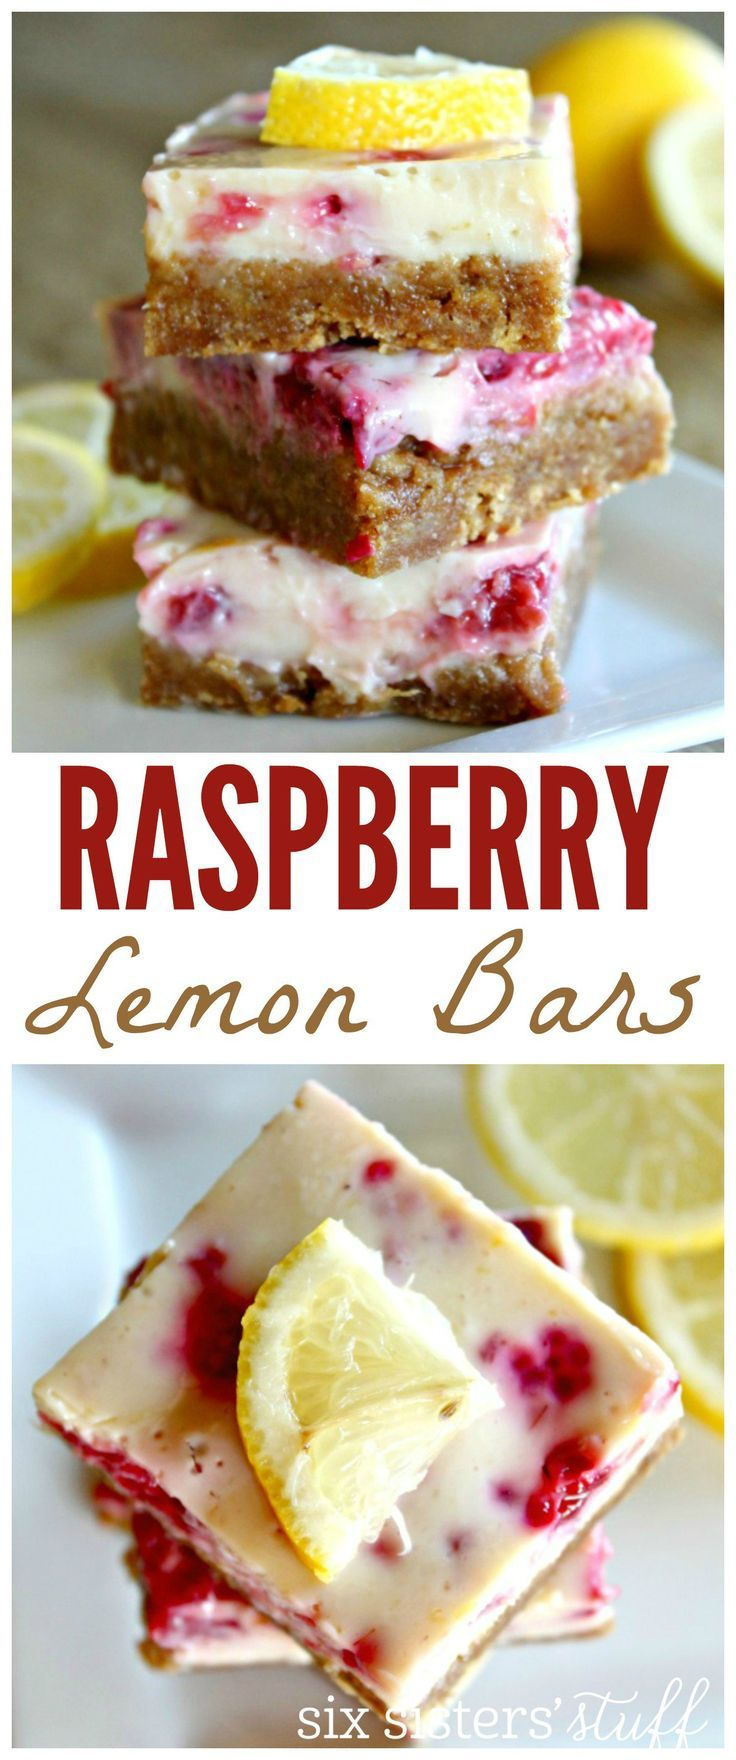 Raspberry Lemon Bars from Six Sisters Stuff | Best Dessert Recipes | Bars and Brownies Ideas | Potluck Food | Spring Food Ideas